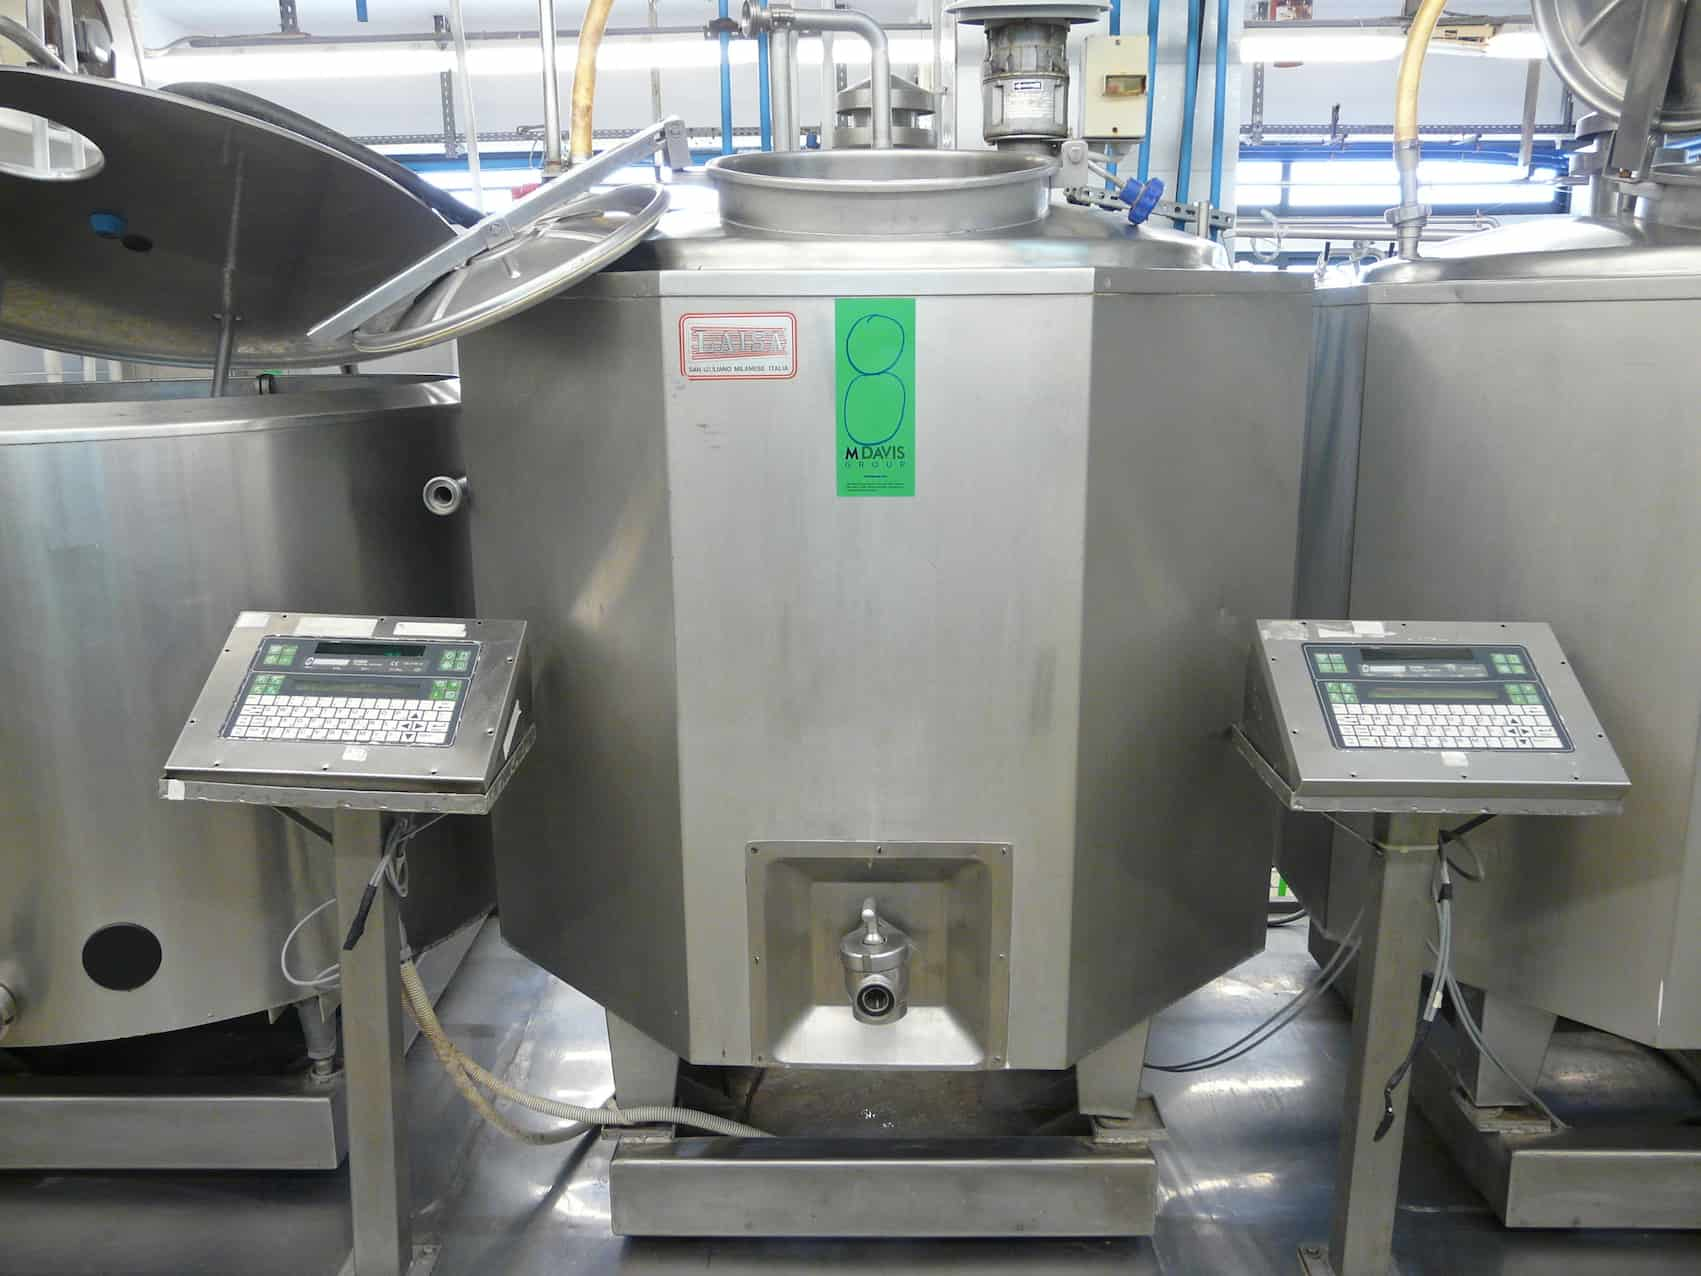 Mixing/Cooling Tank for Ice Cream 550L with Agitator, Type LAISA, Can be Connected to Chiller, Can be Connected to CIP System, Contains Scales with  Display, Y.O.M.: 1993